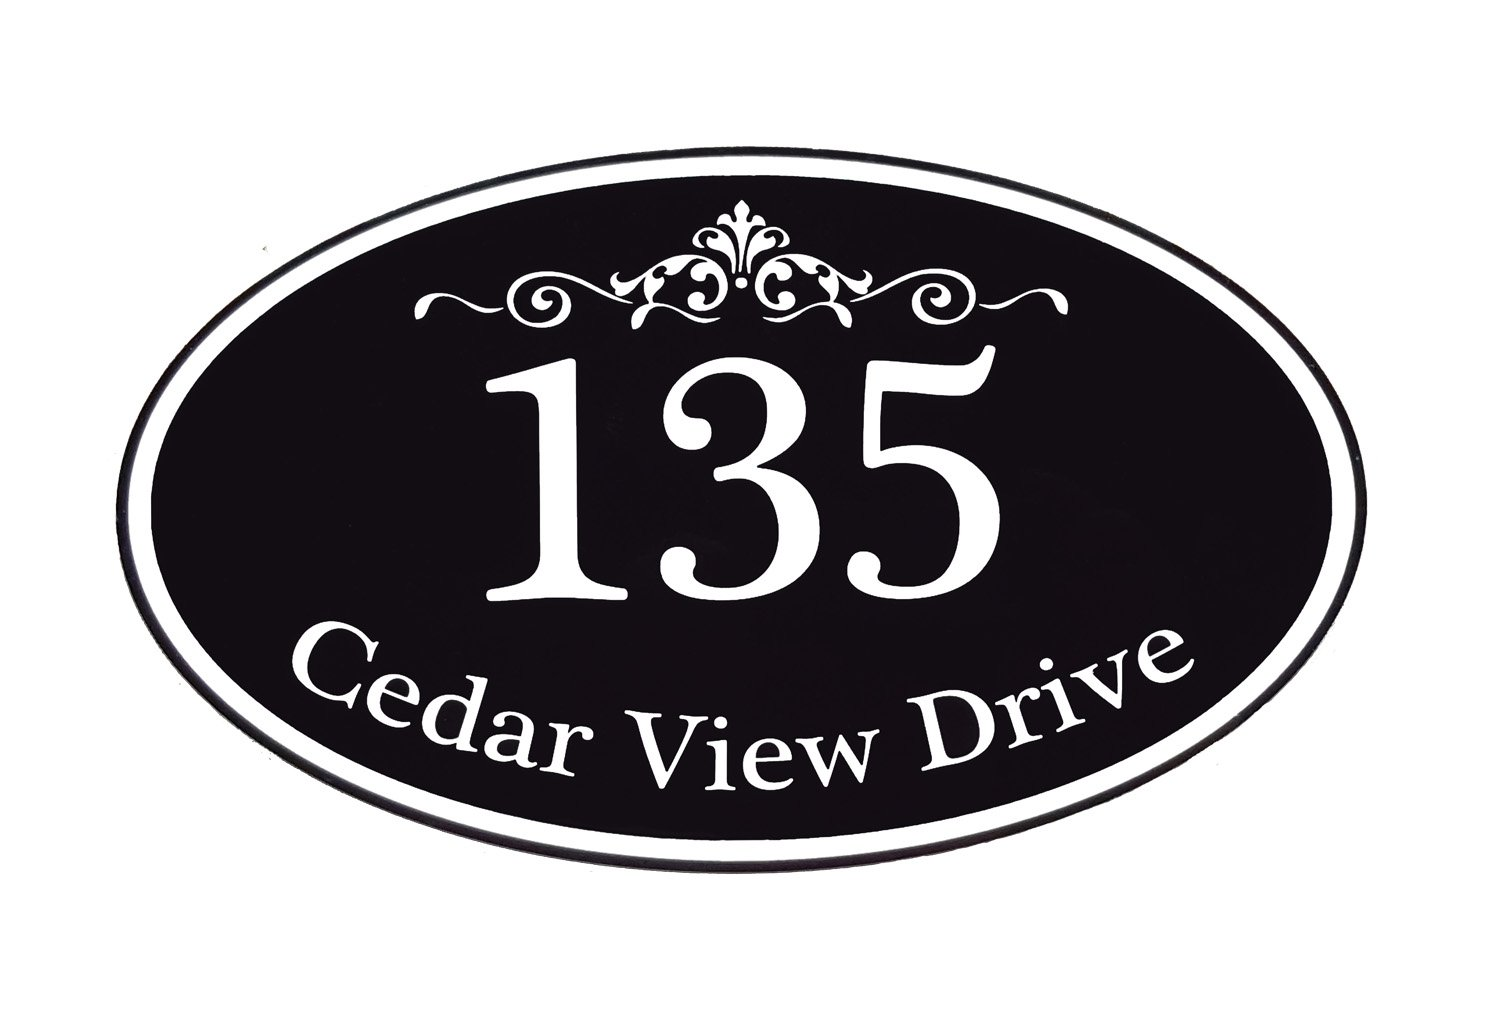 Customized Home Address Sign, Aluminum 12'' x 7'' Oval House Number Plaque, Personalized Color Choices Available (Black)